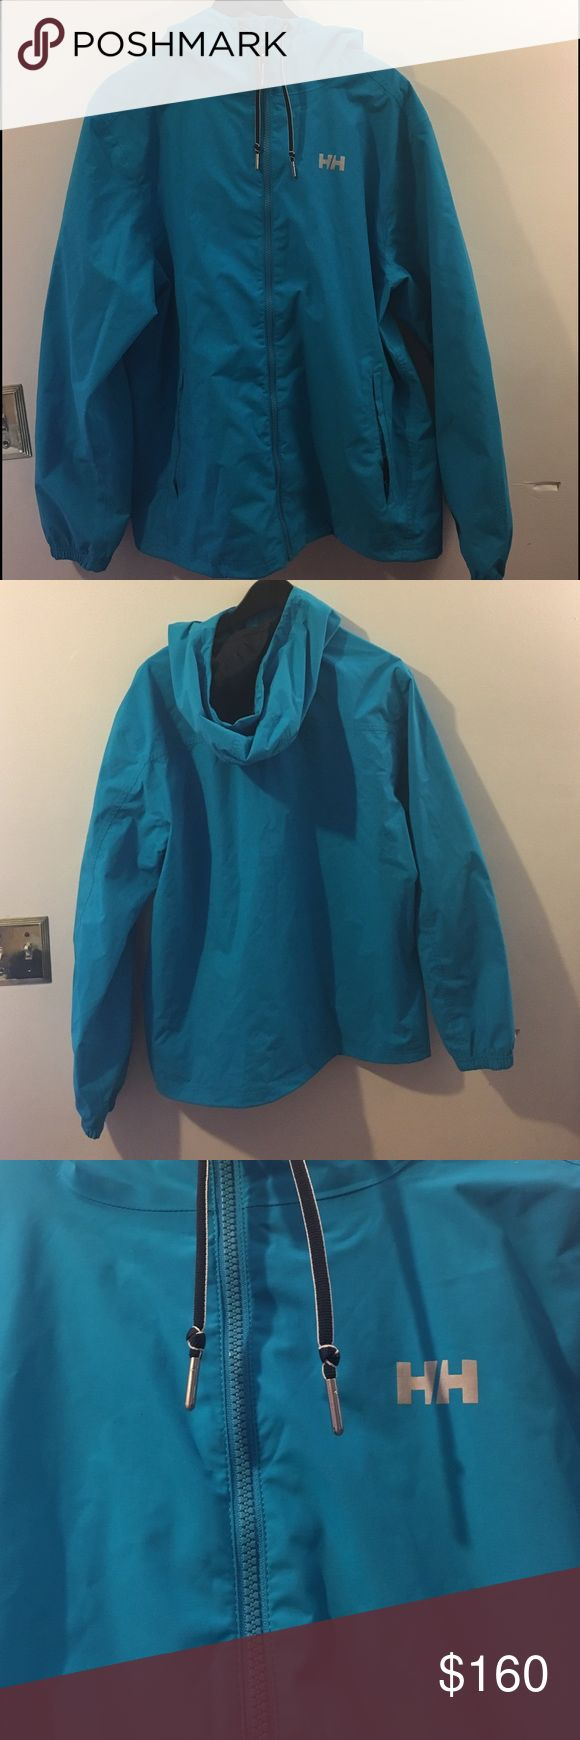 Blue Helly Hansen jacket I am selling a blue Helly Hansen jacket Rain resistant with lining inside . There are no damages. Helly Hansen Jackets & Coats Windbreakers